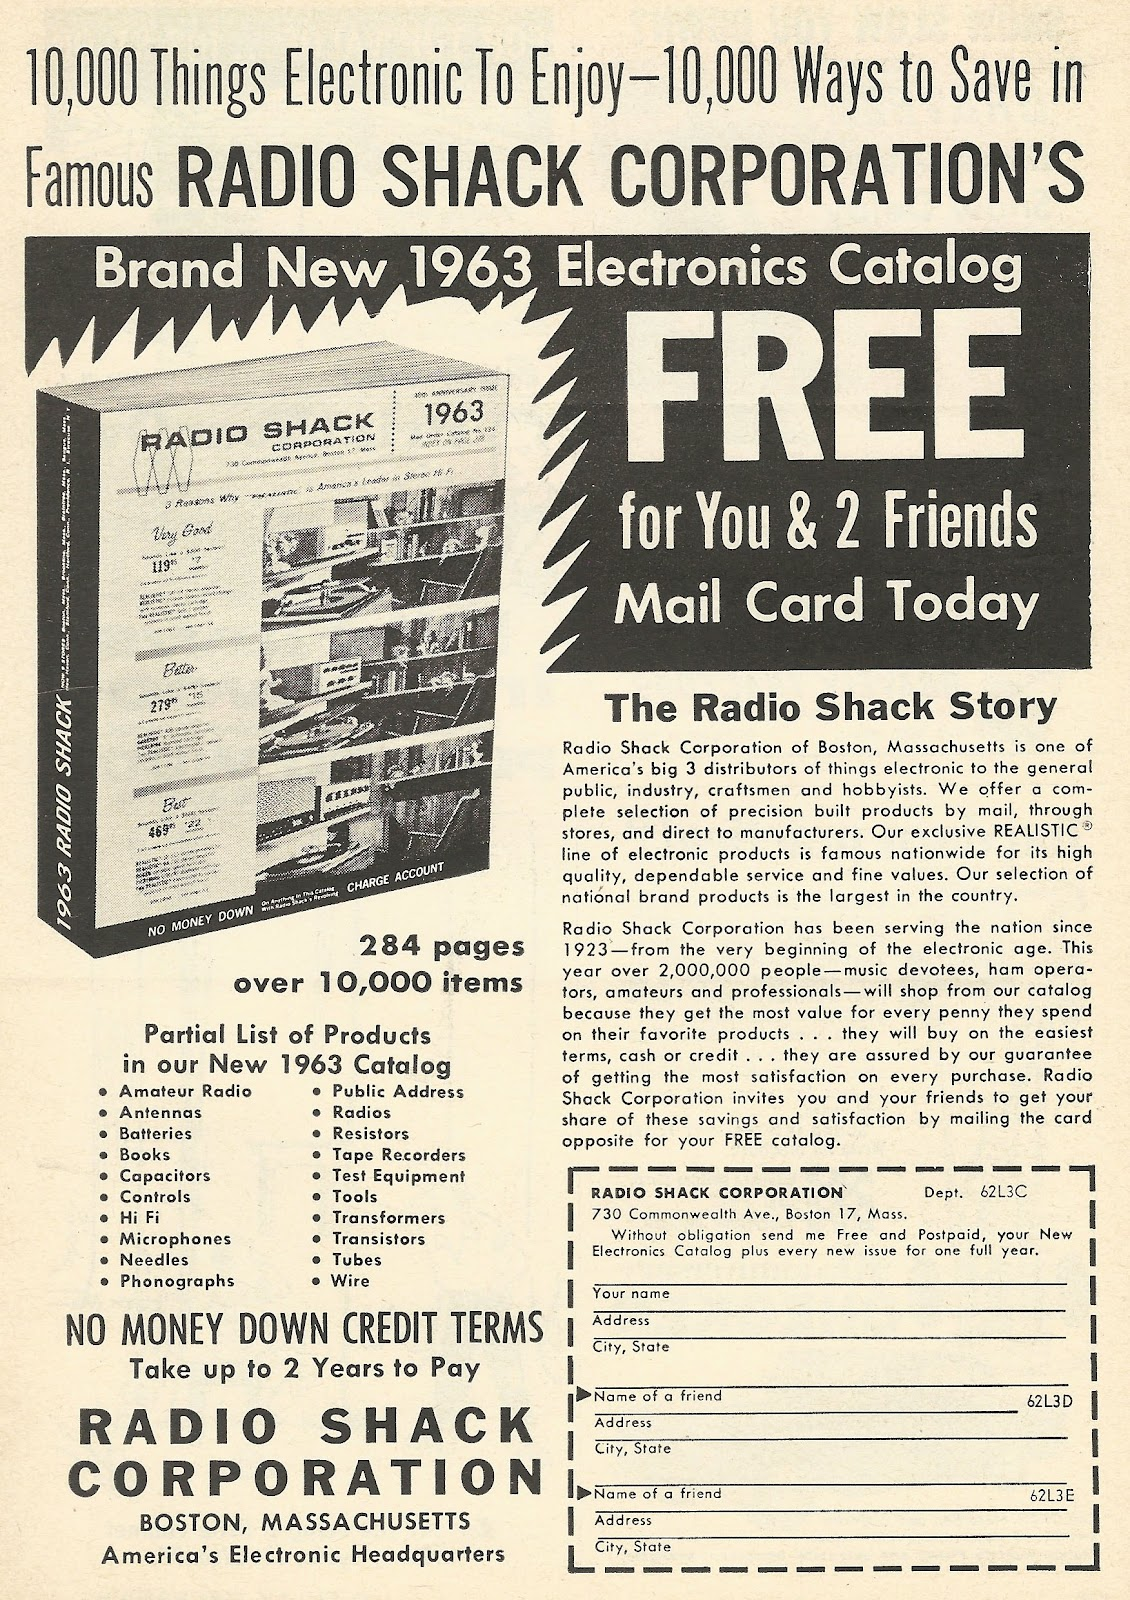 Old Ads Are Funny: 1962 ad: Radio Shack's 1963 Electronics